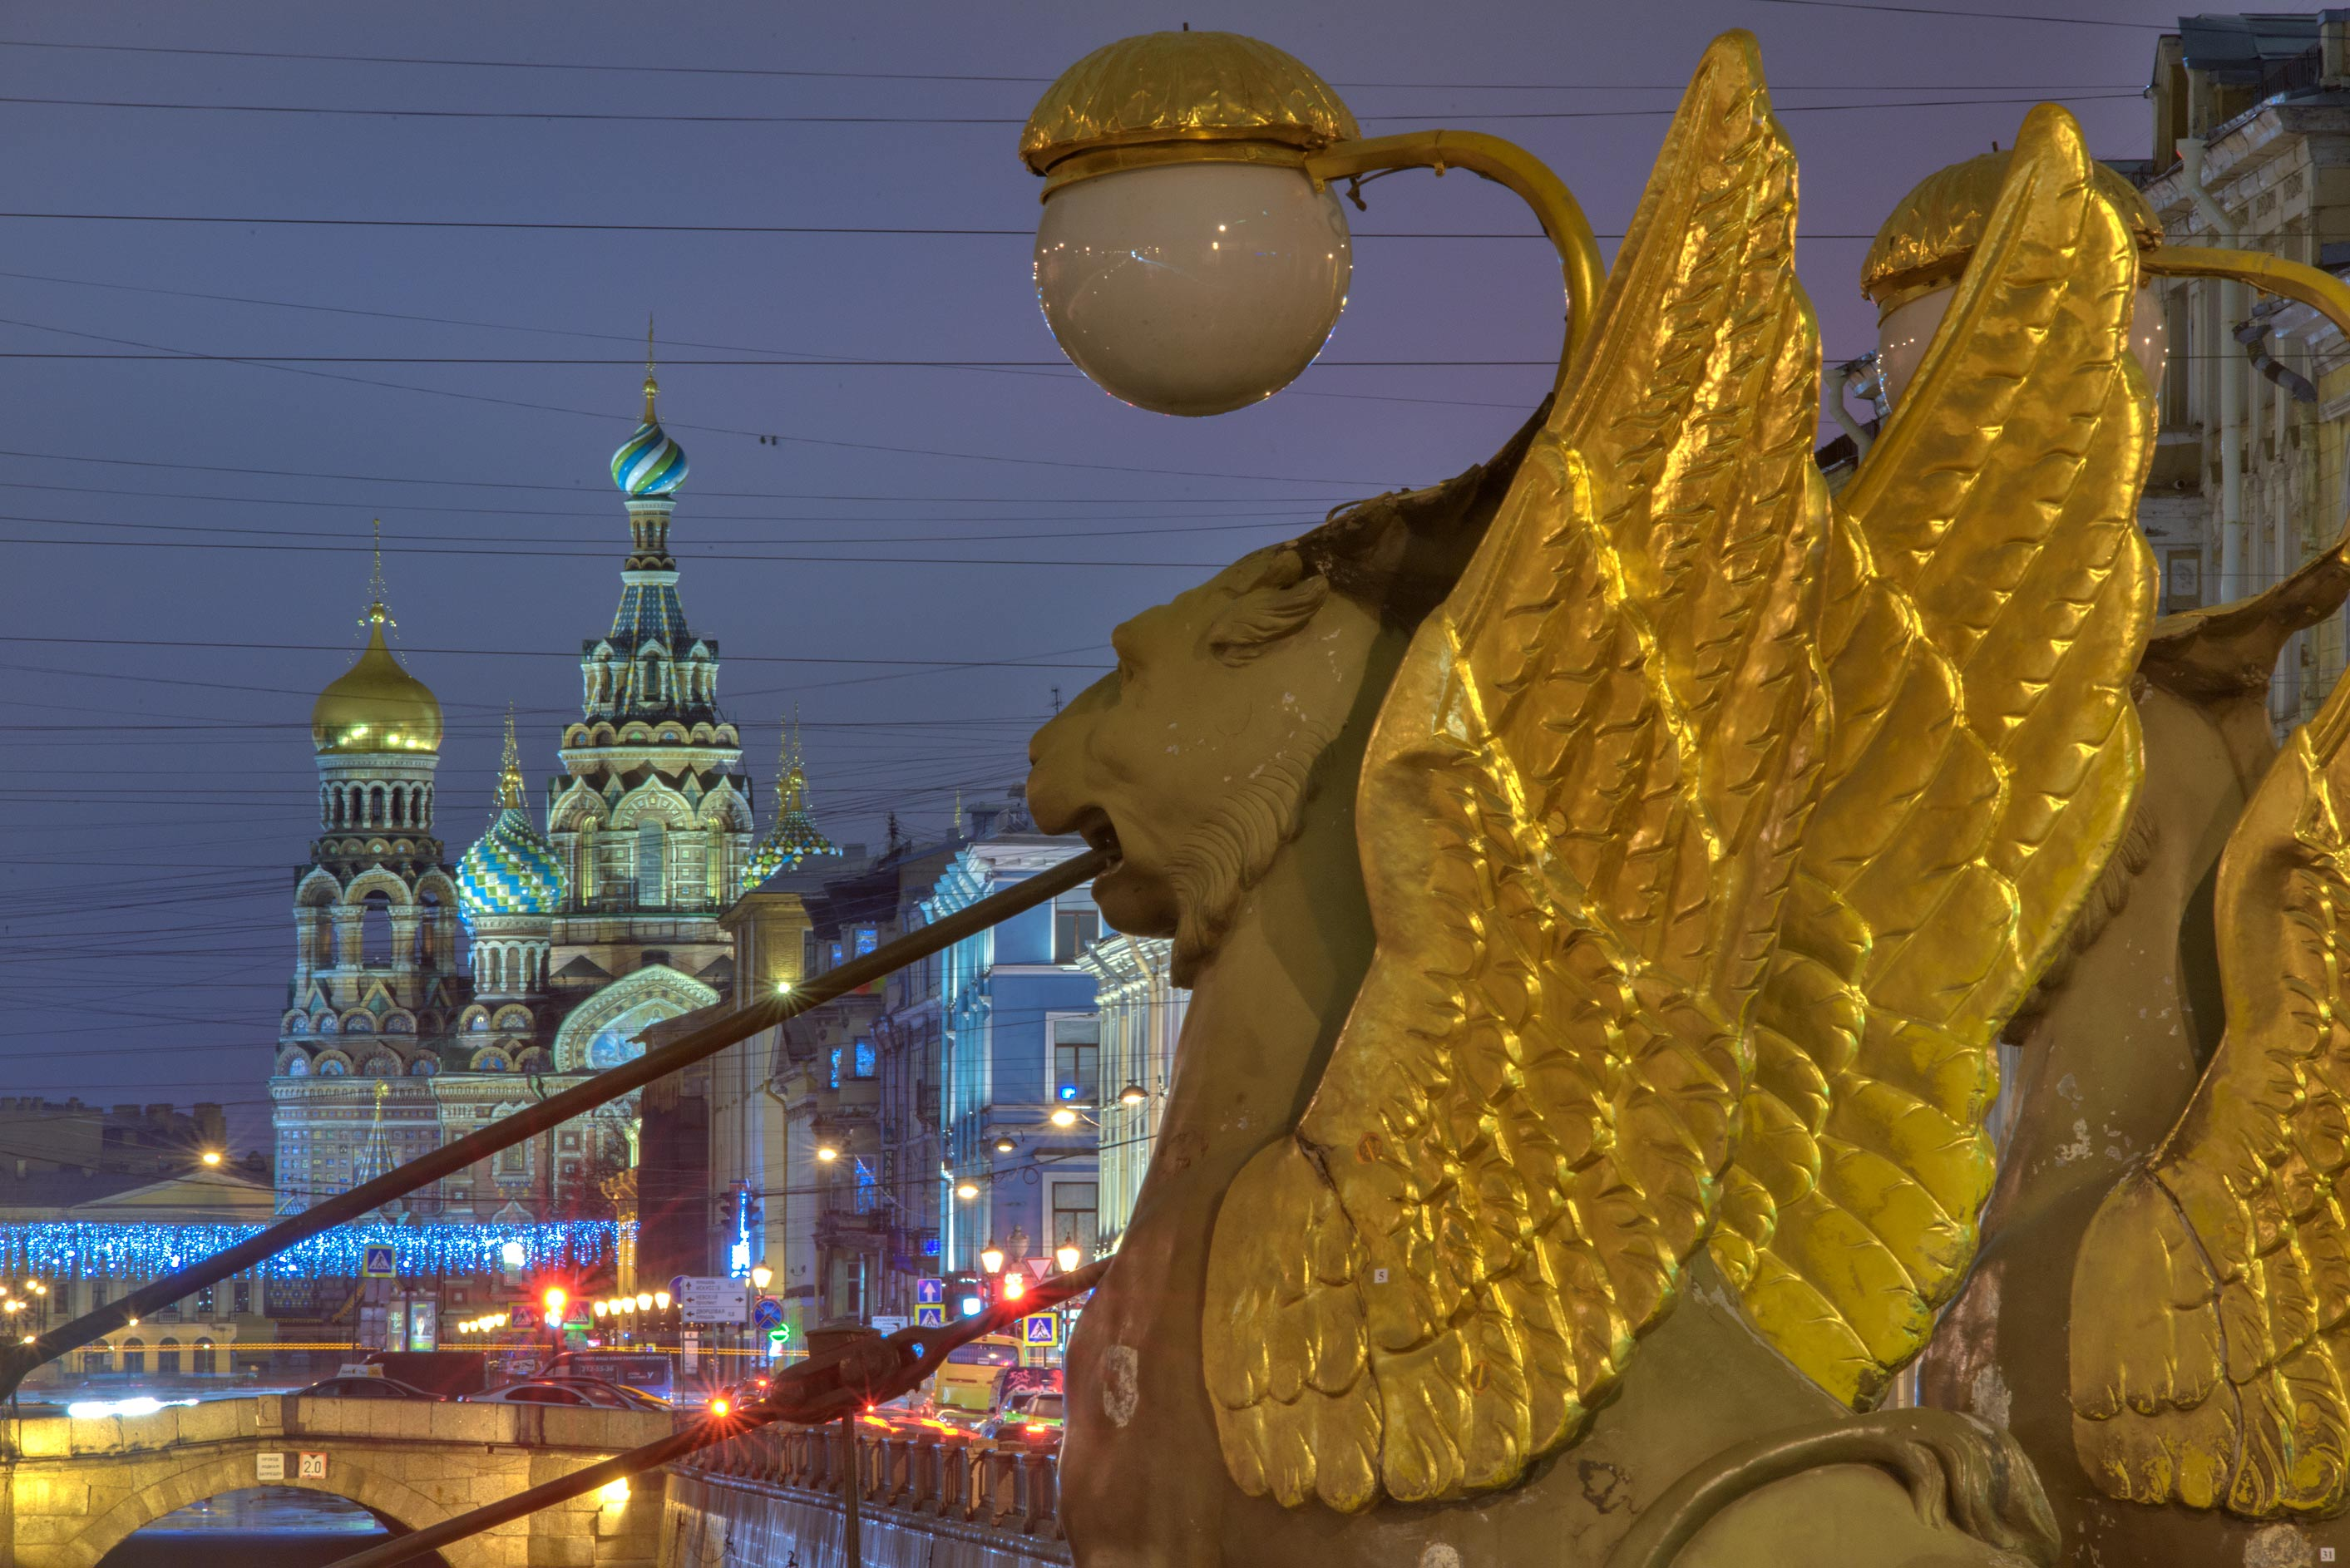 Gryphons of Bank Bridge of Griboedova Canal, with...in background. St.Petersburg, Russia